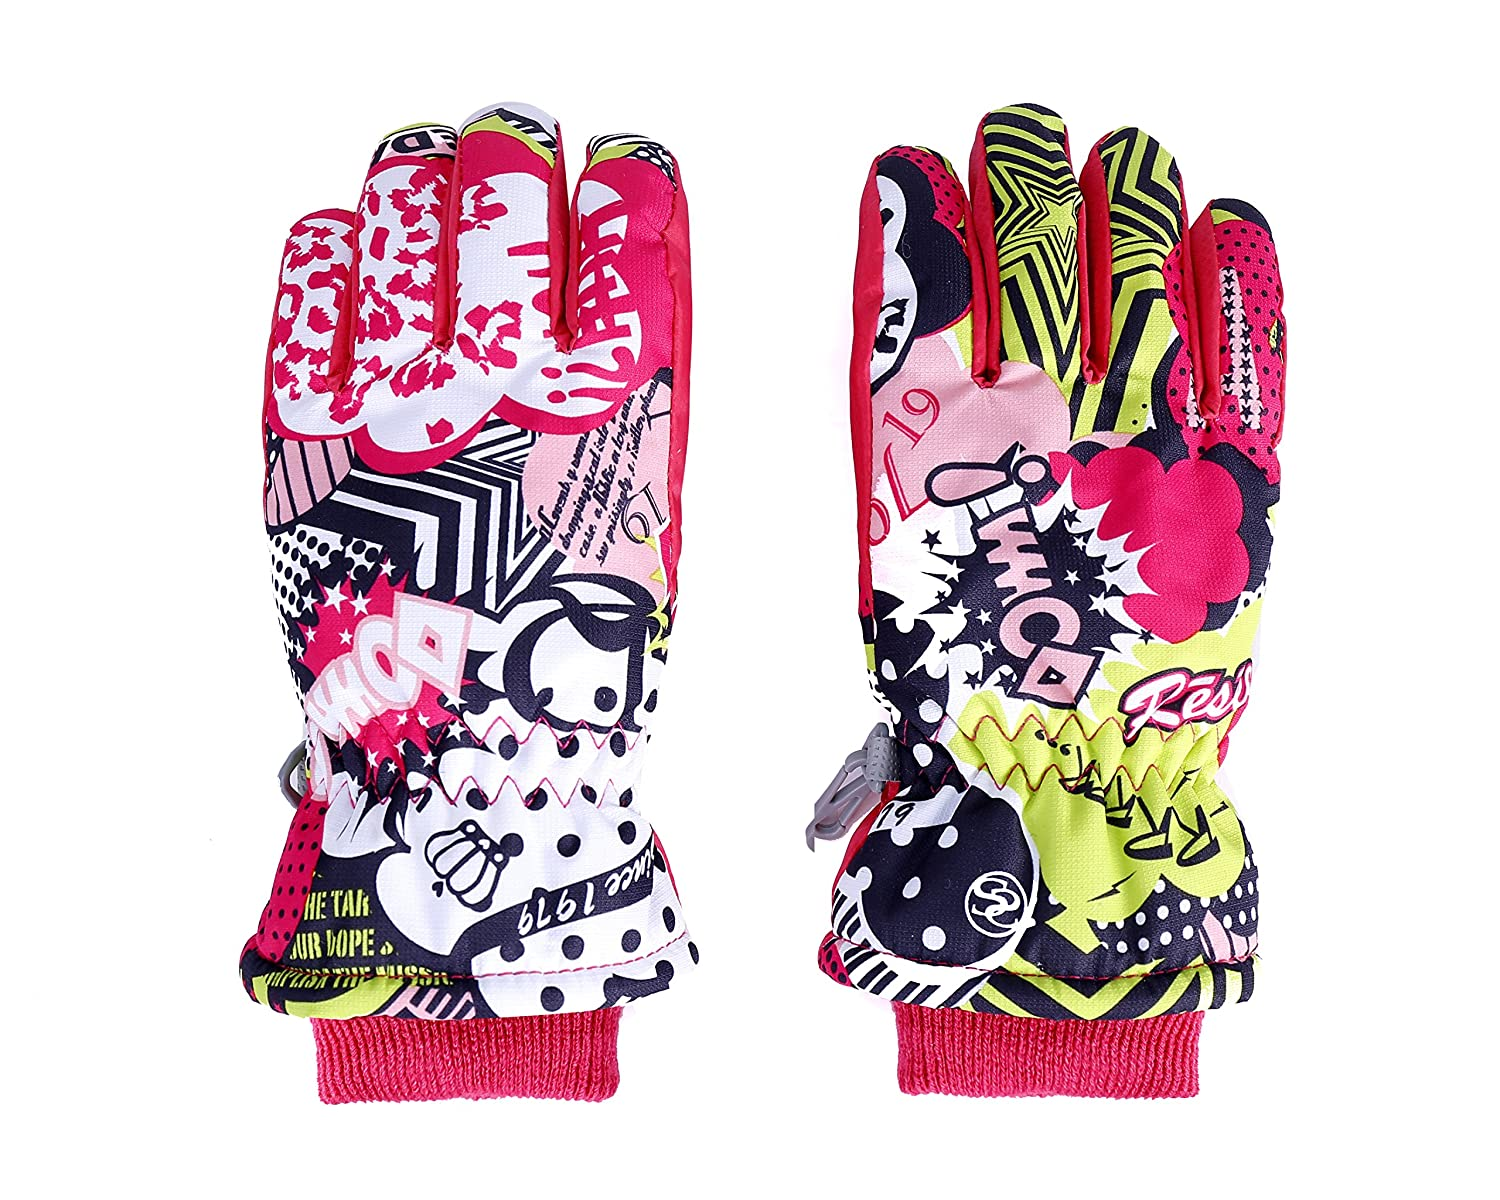 VERTAST Boys Girls Windproof Winter Warm Gloves Weather Proof Snow Ski Cycle Gloves